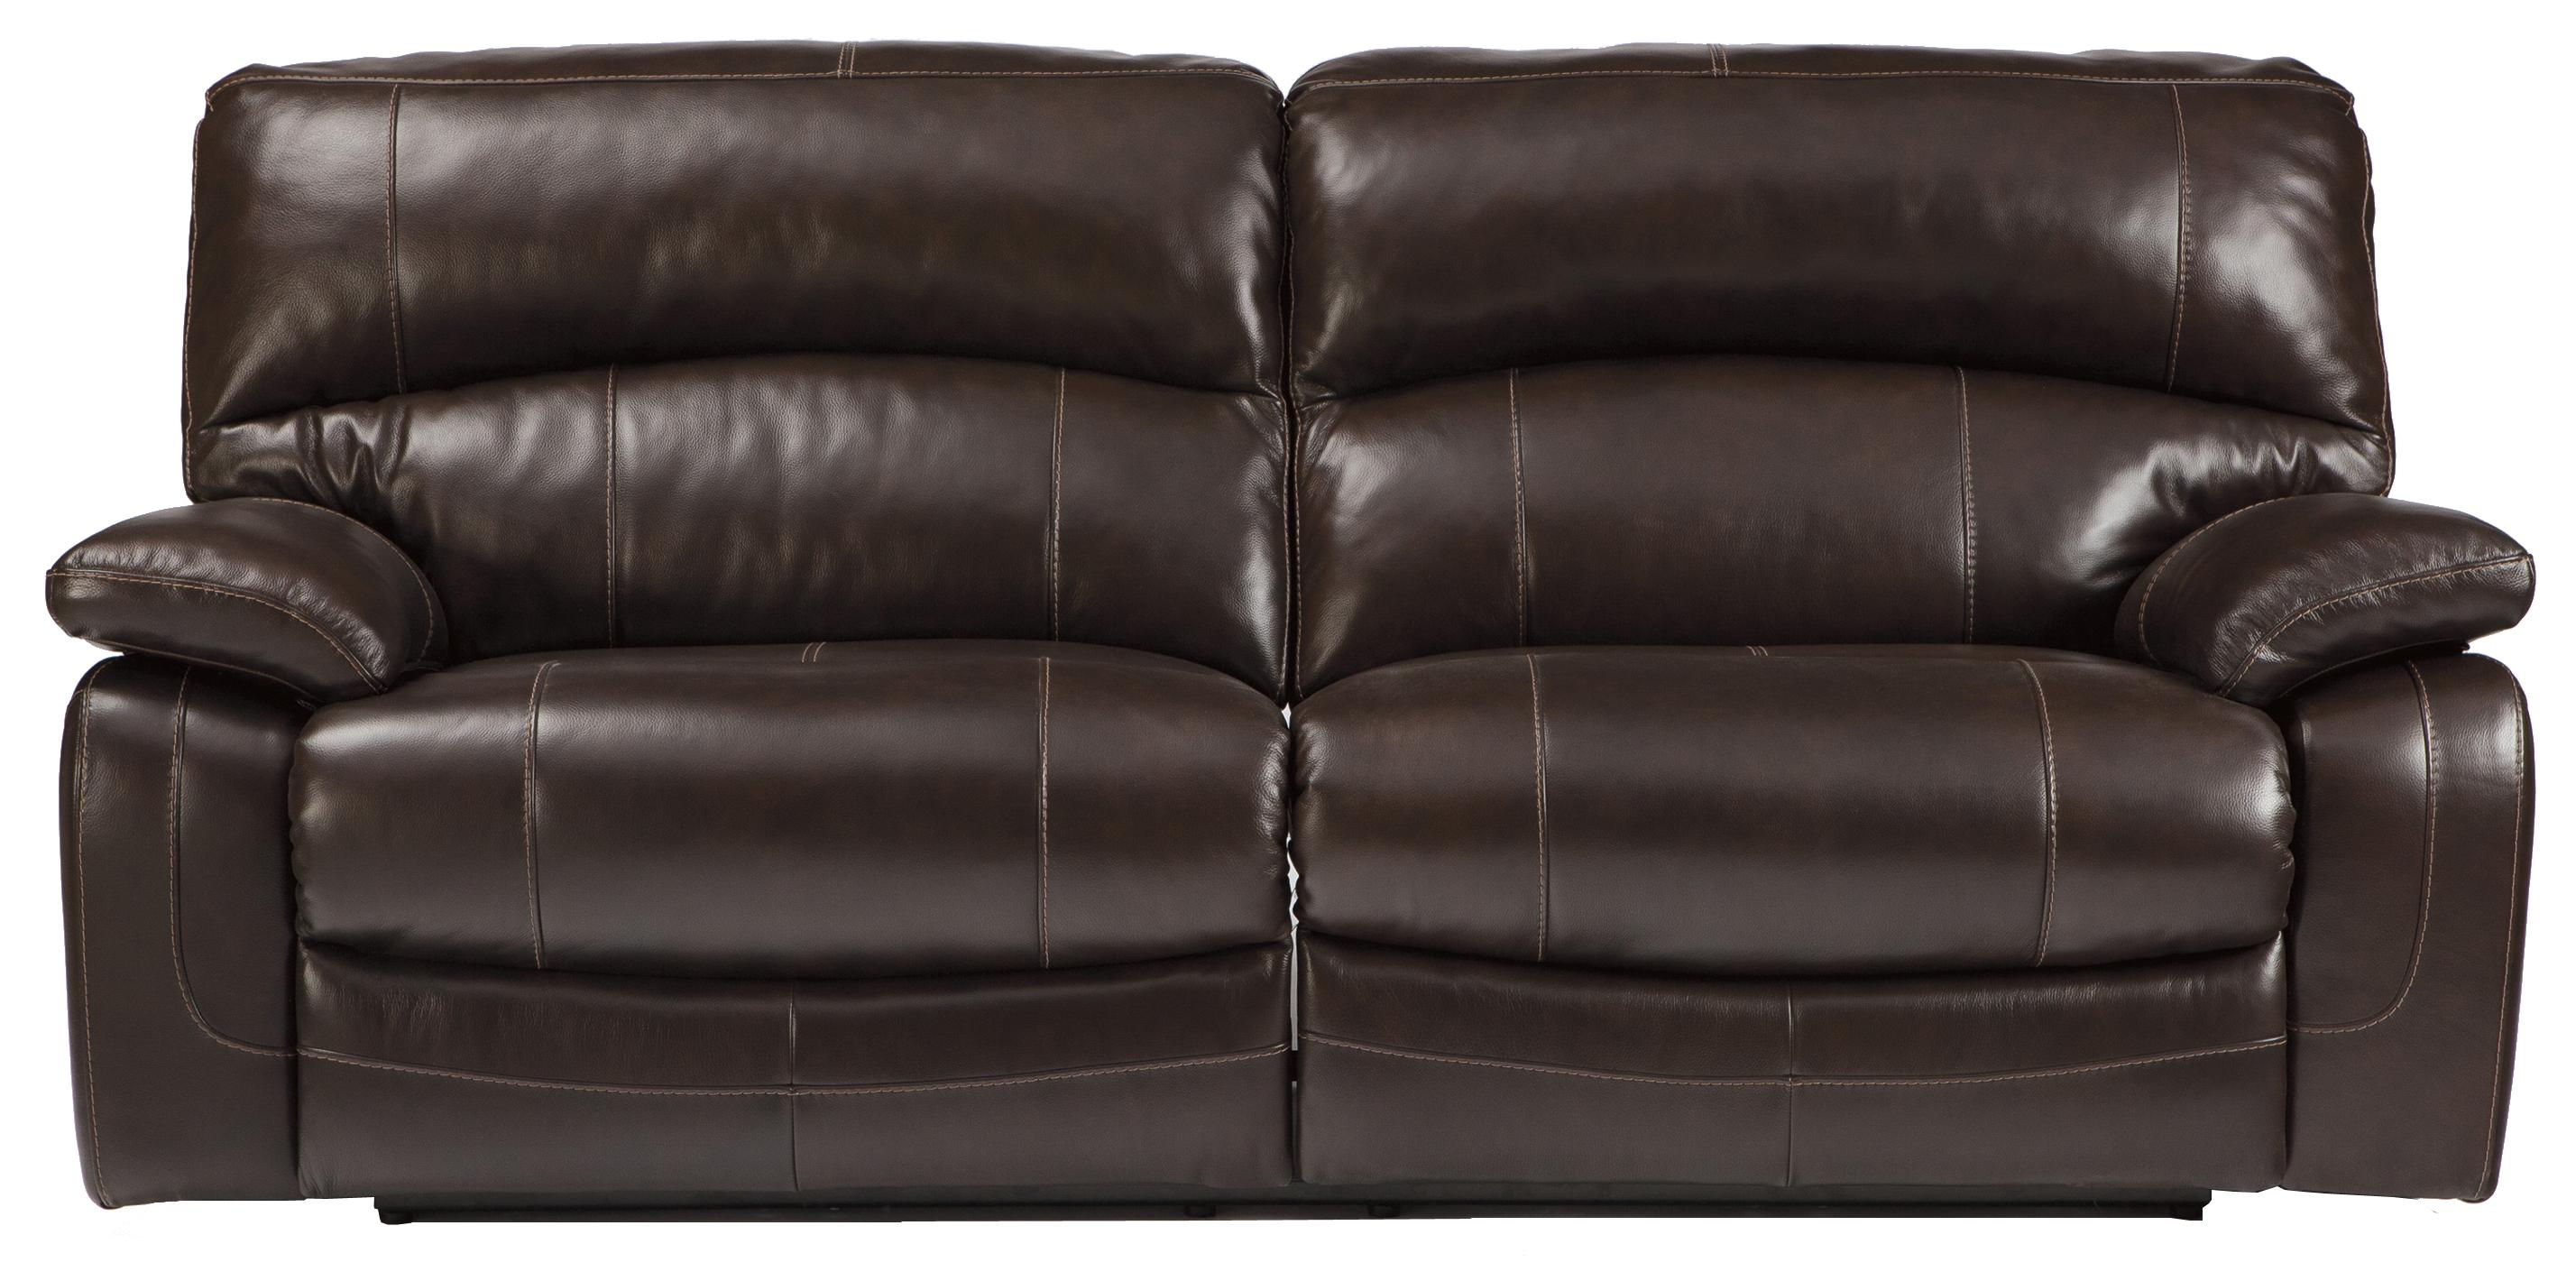 Signature Design By Ashley Damacio   Dark Brown 2 Seat Reclining Power Sofa    Item Number